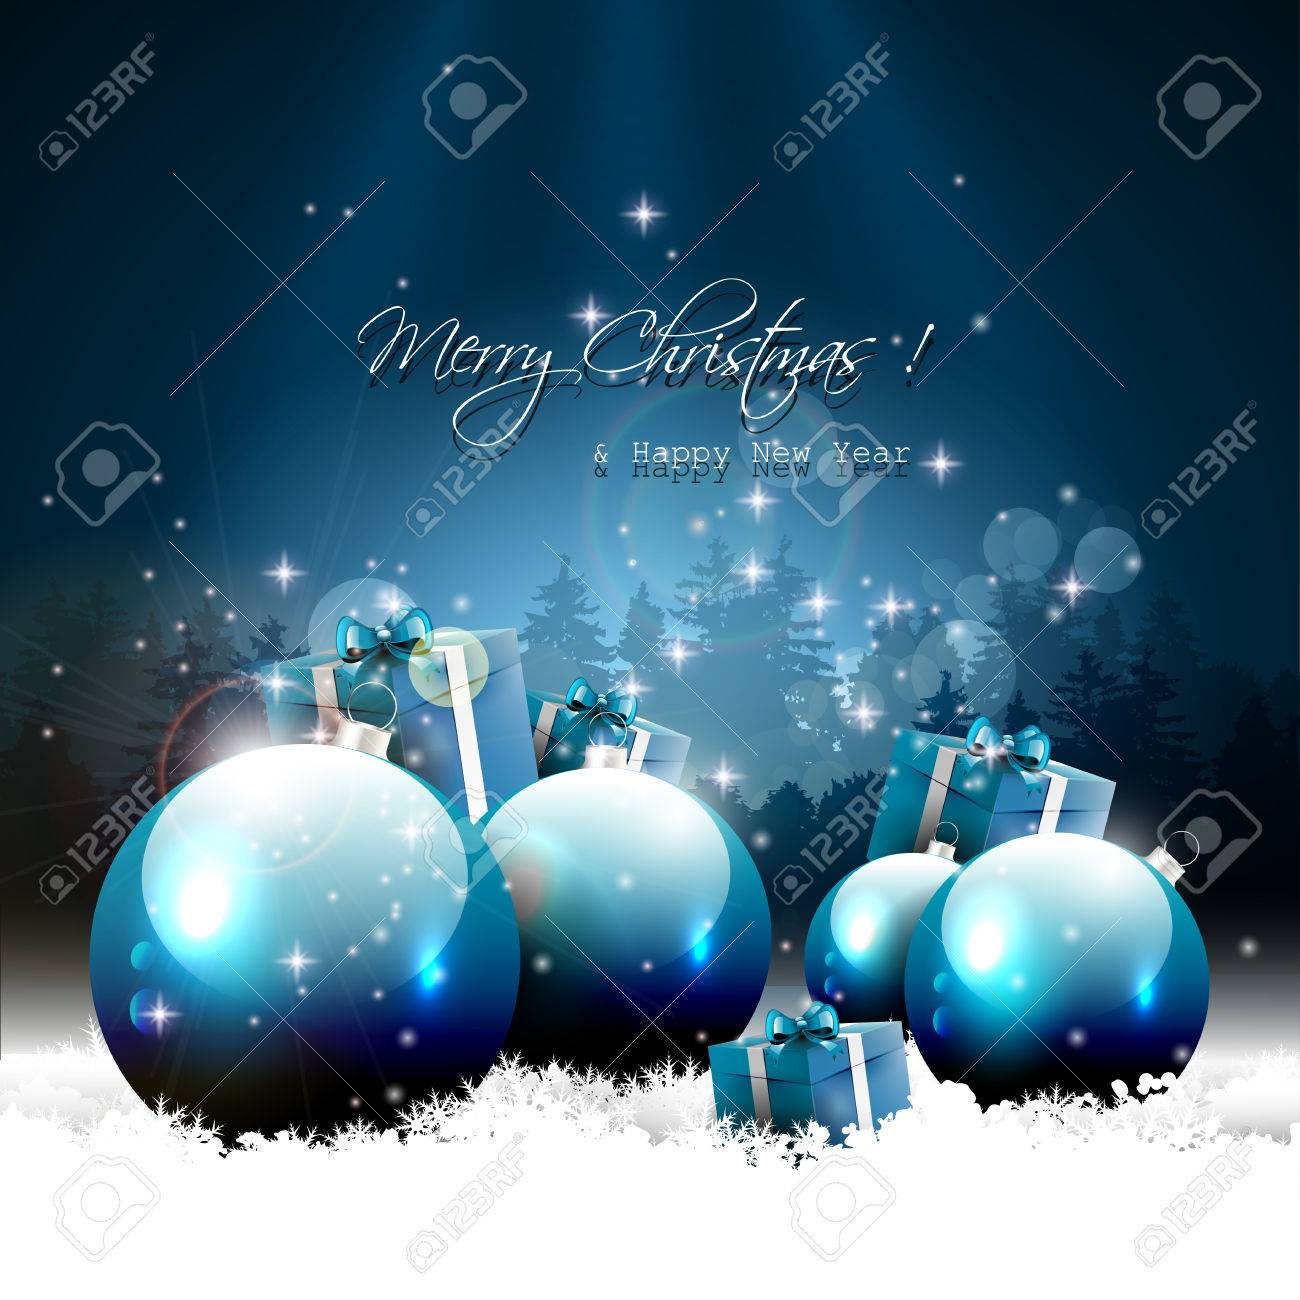 Modern Christmas greeting card with balls and gifts in snow Stock Vector - 23872934